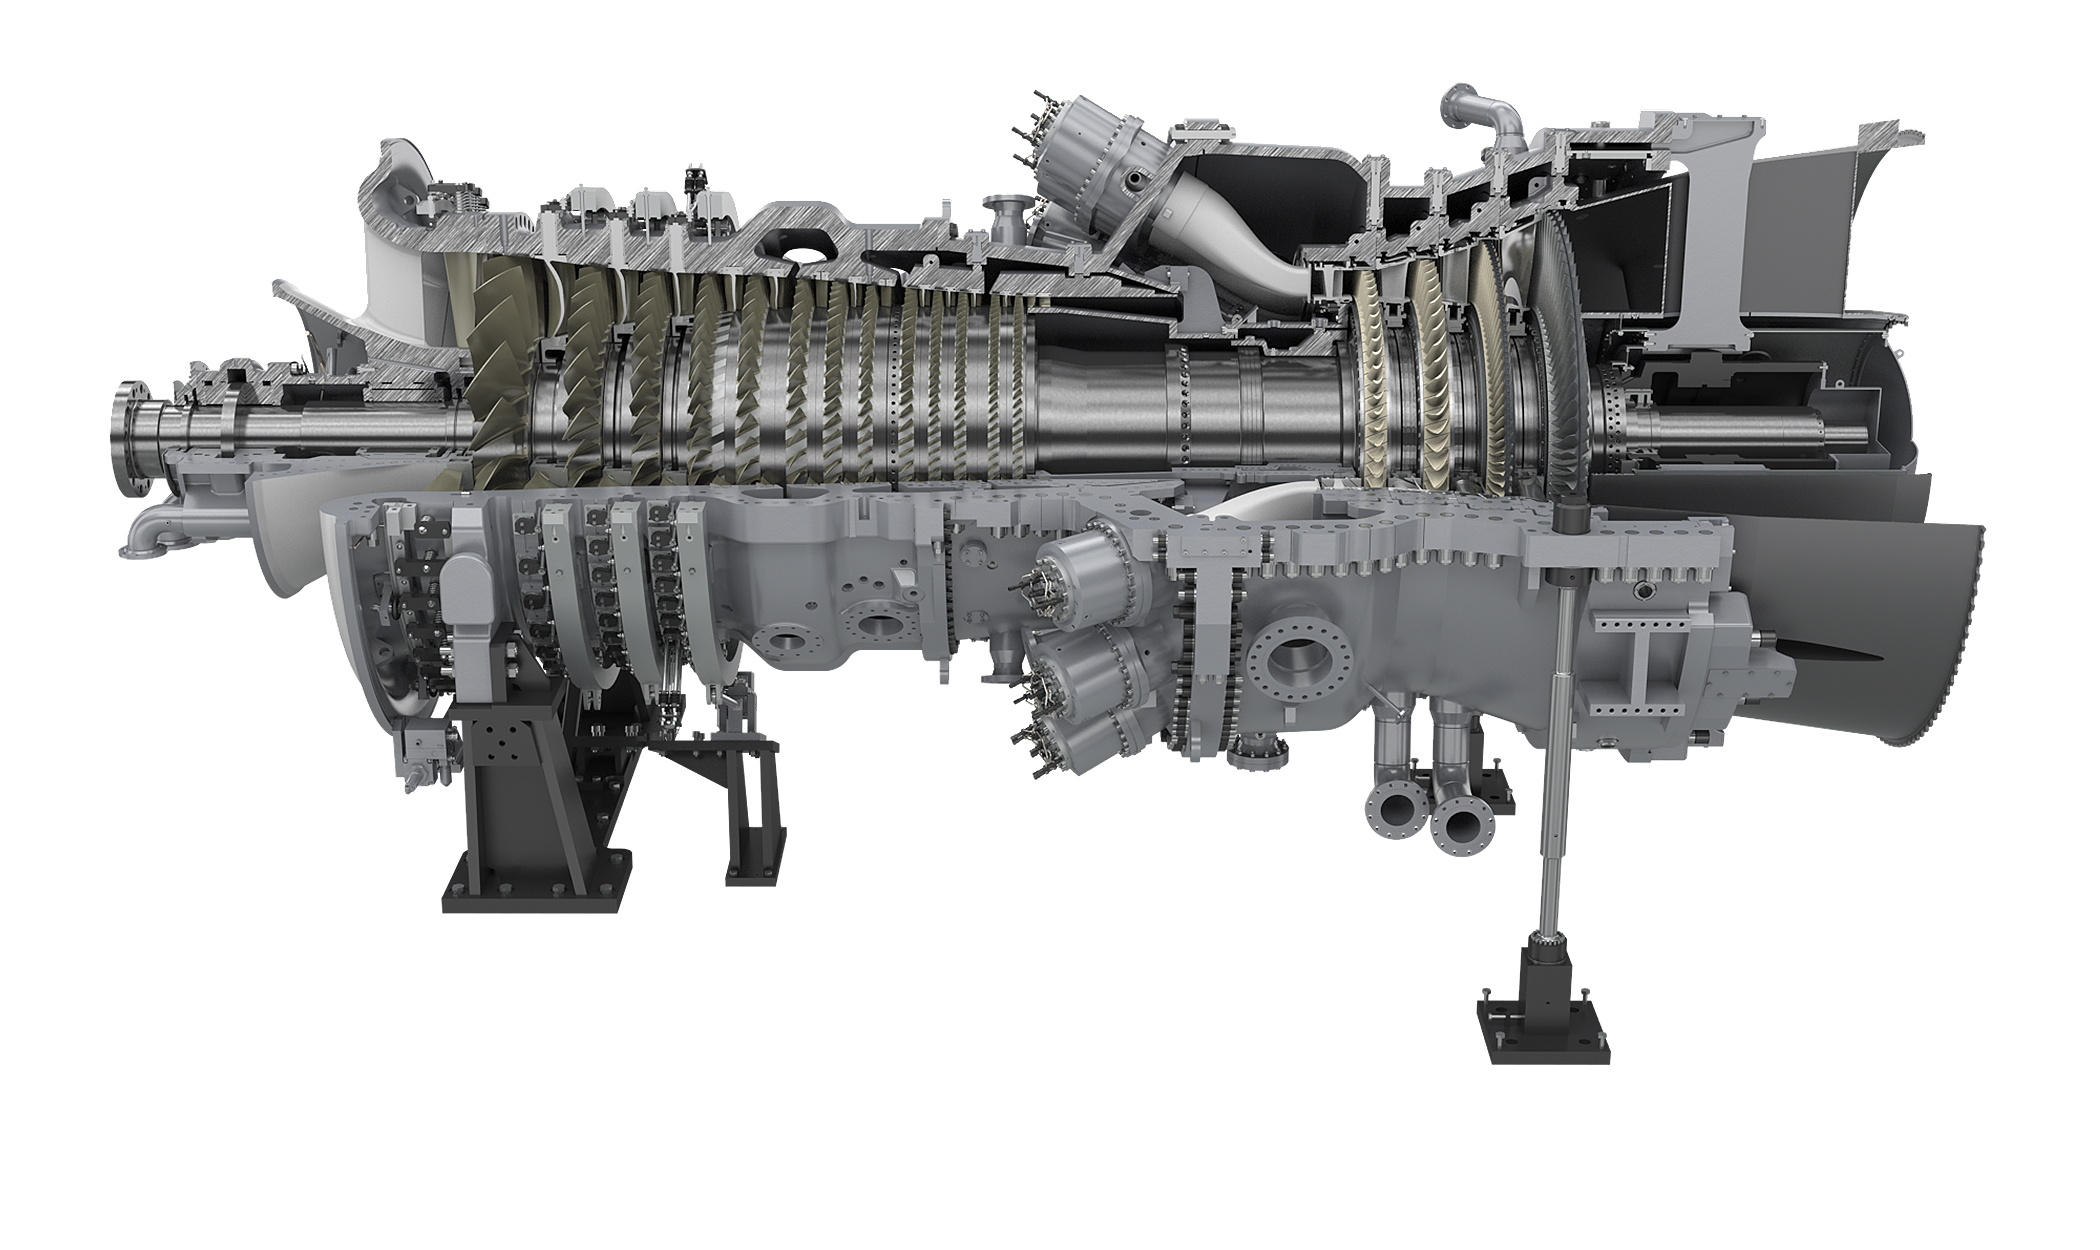 SGT6-5000F | F-class Gas Turbine | Siemens Global Website